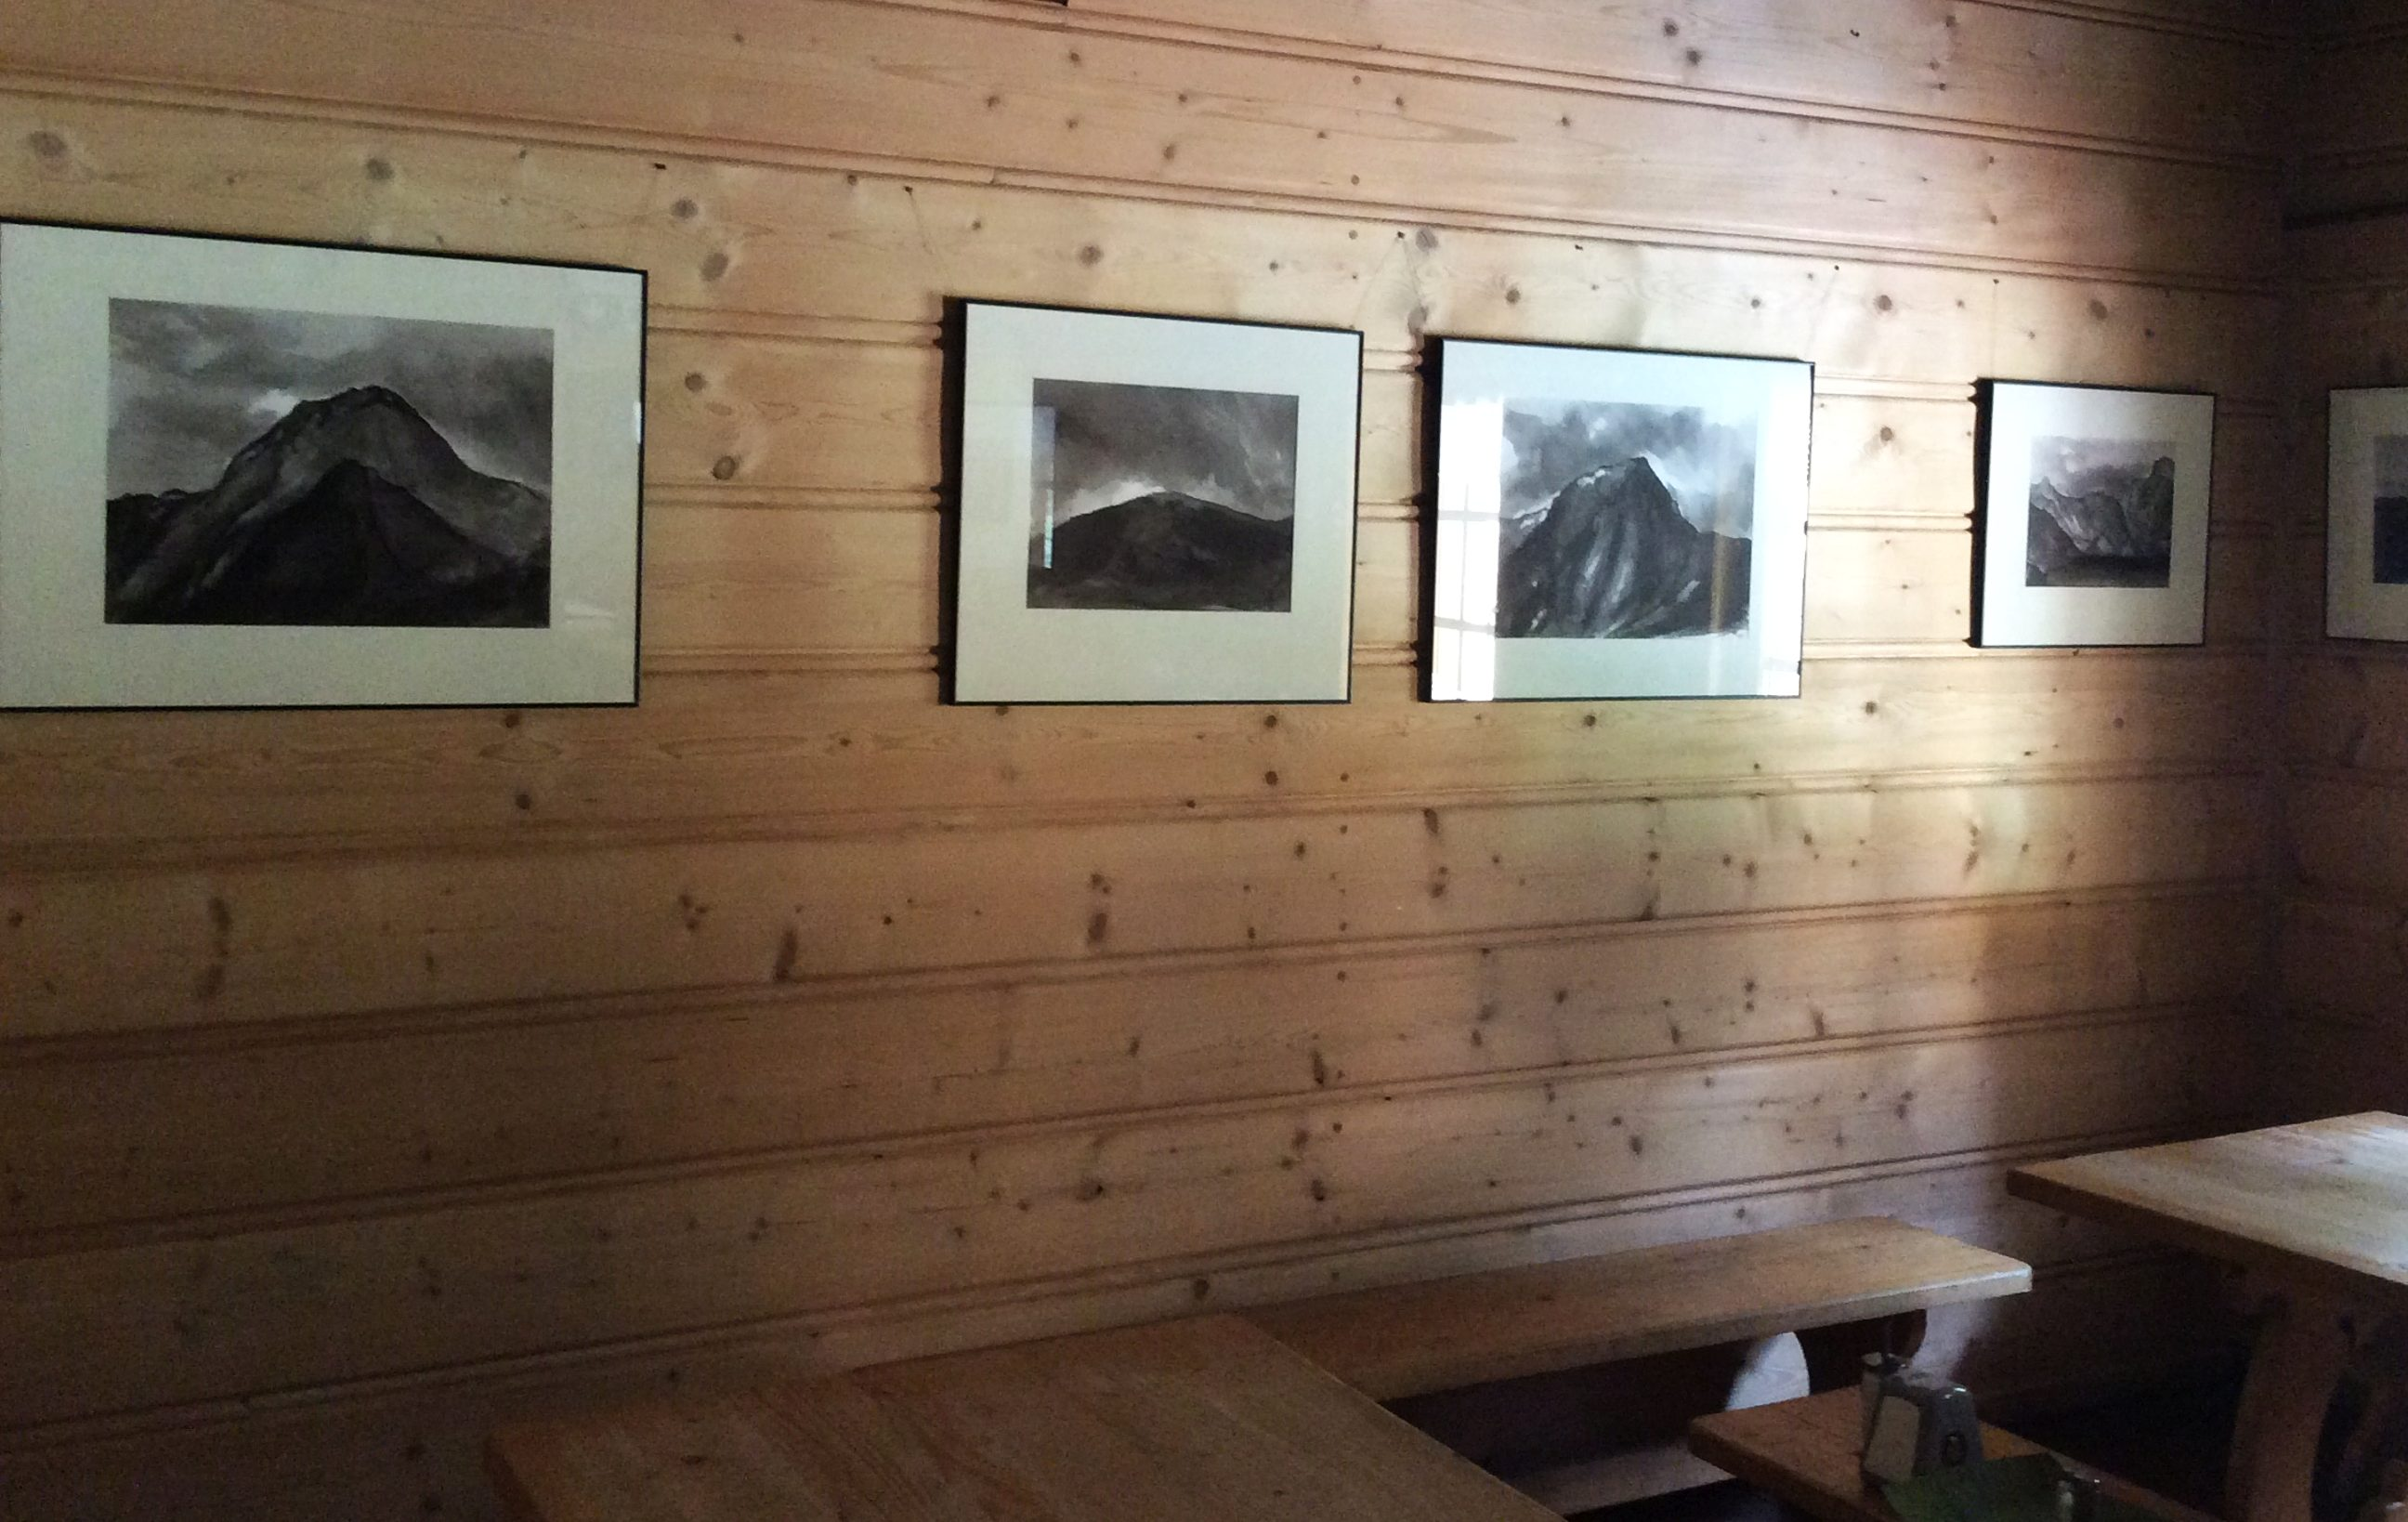 Exhibition at the Hostel Shelter in the Valley Roztoka, Tatra Mountains, 2019